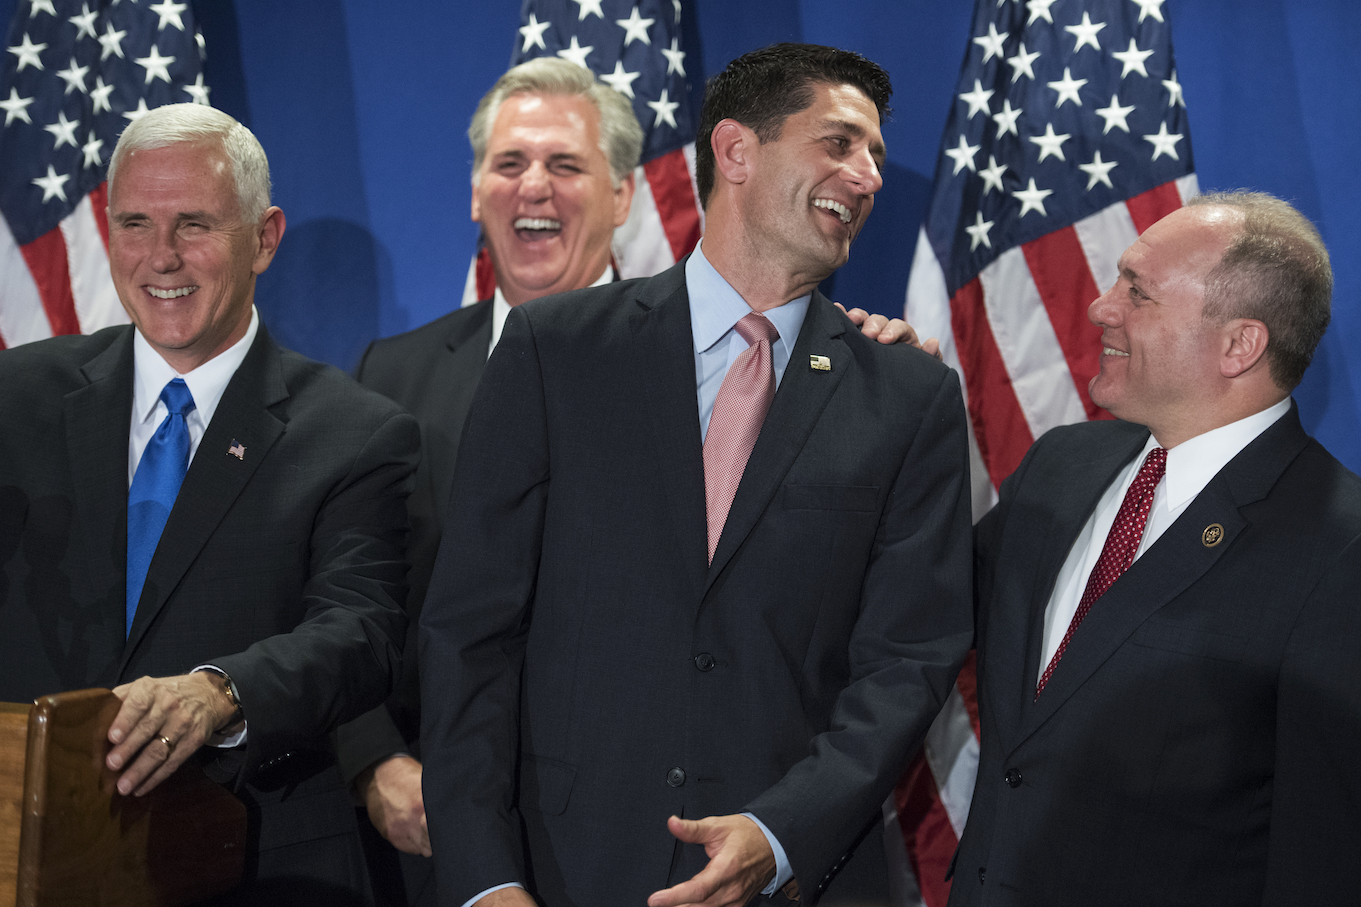 Republicans laugh